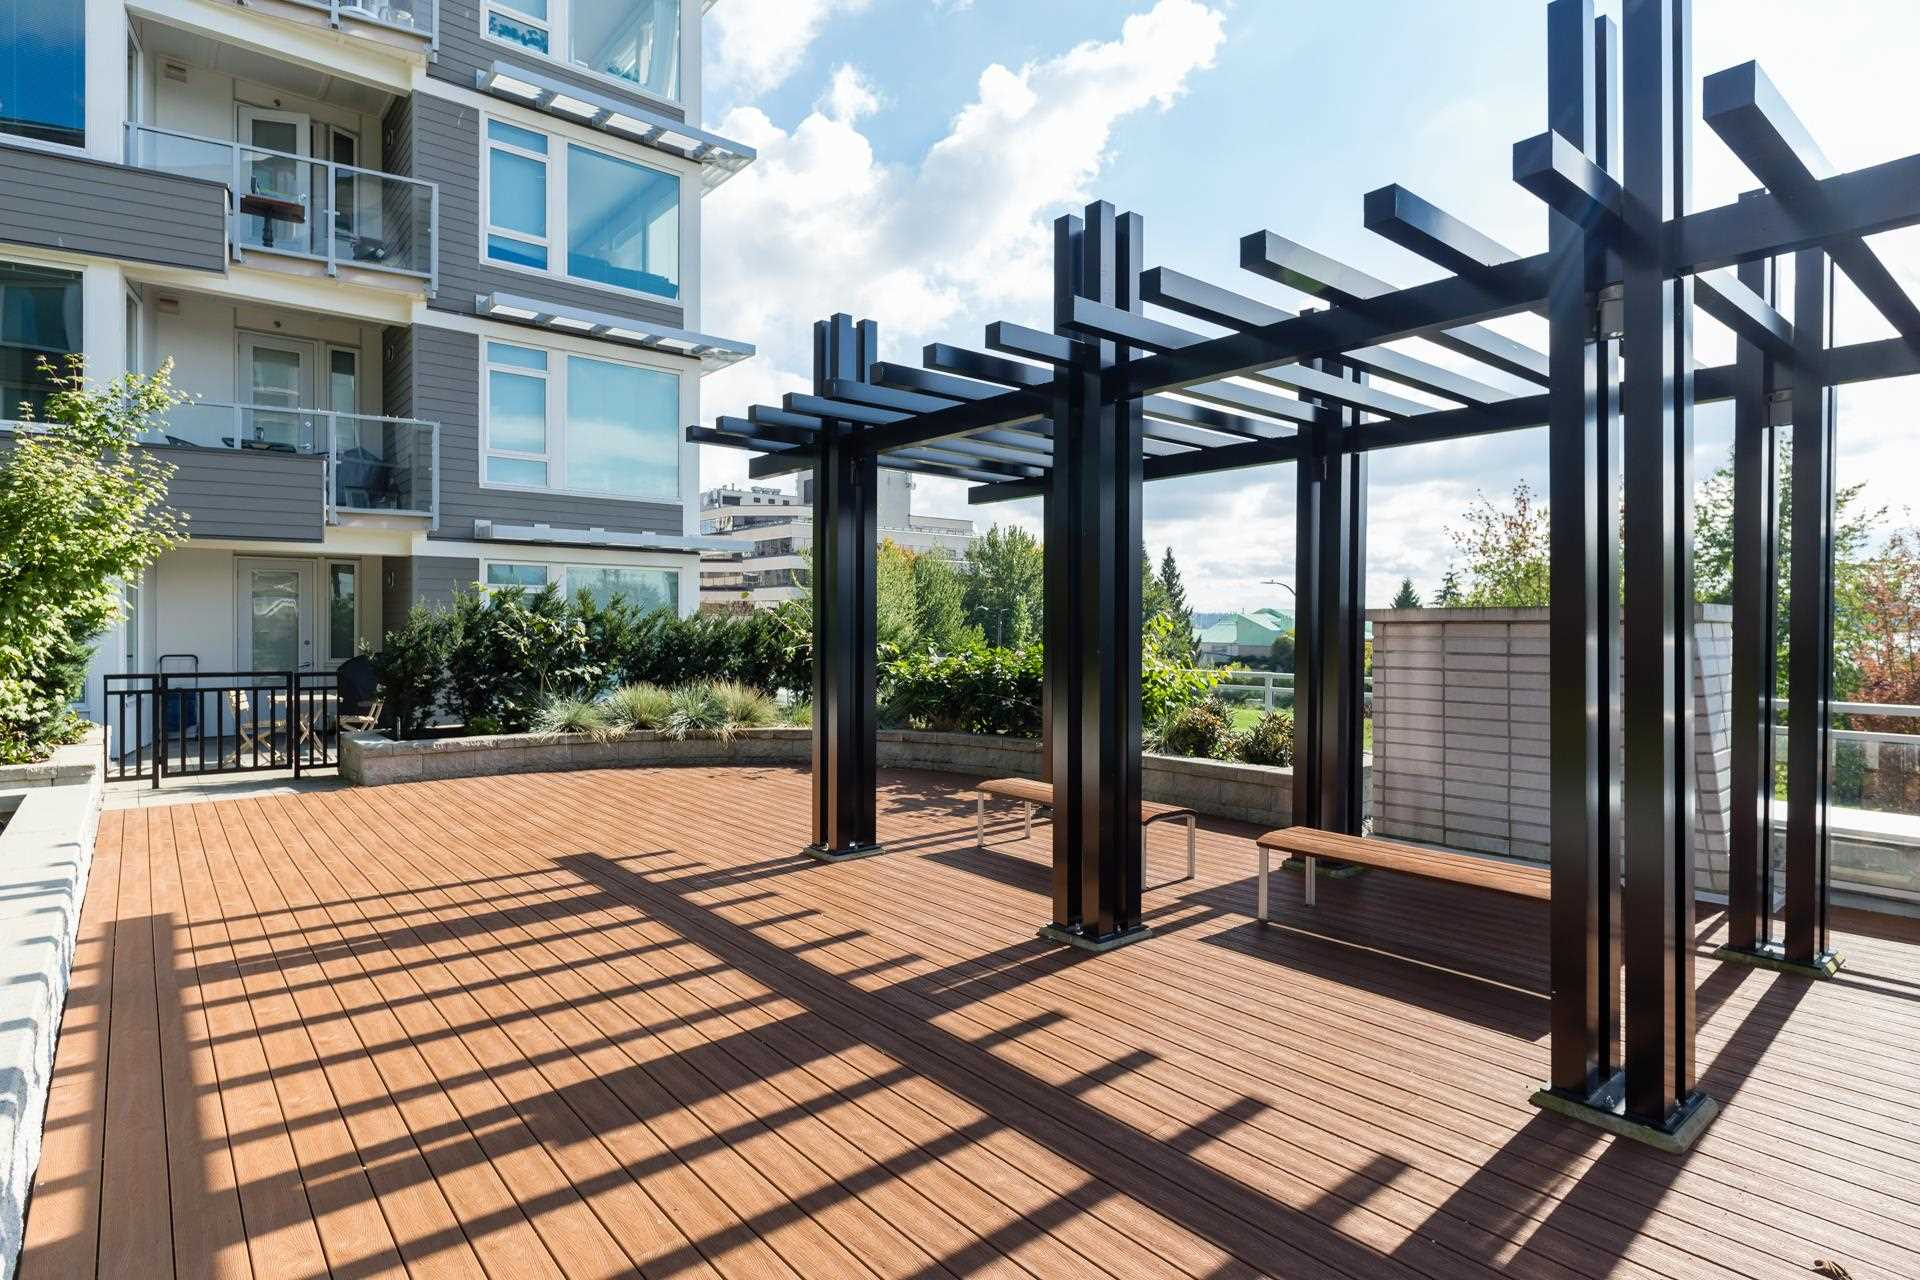 207 255 W 1ST STREET - Lower Lonsdale Apartment/Condo for sale, 2 Bedrooms (R2603882) - #30